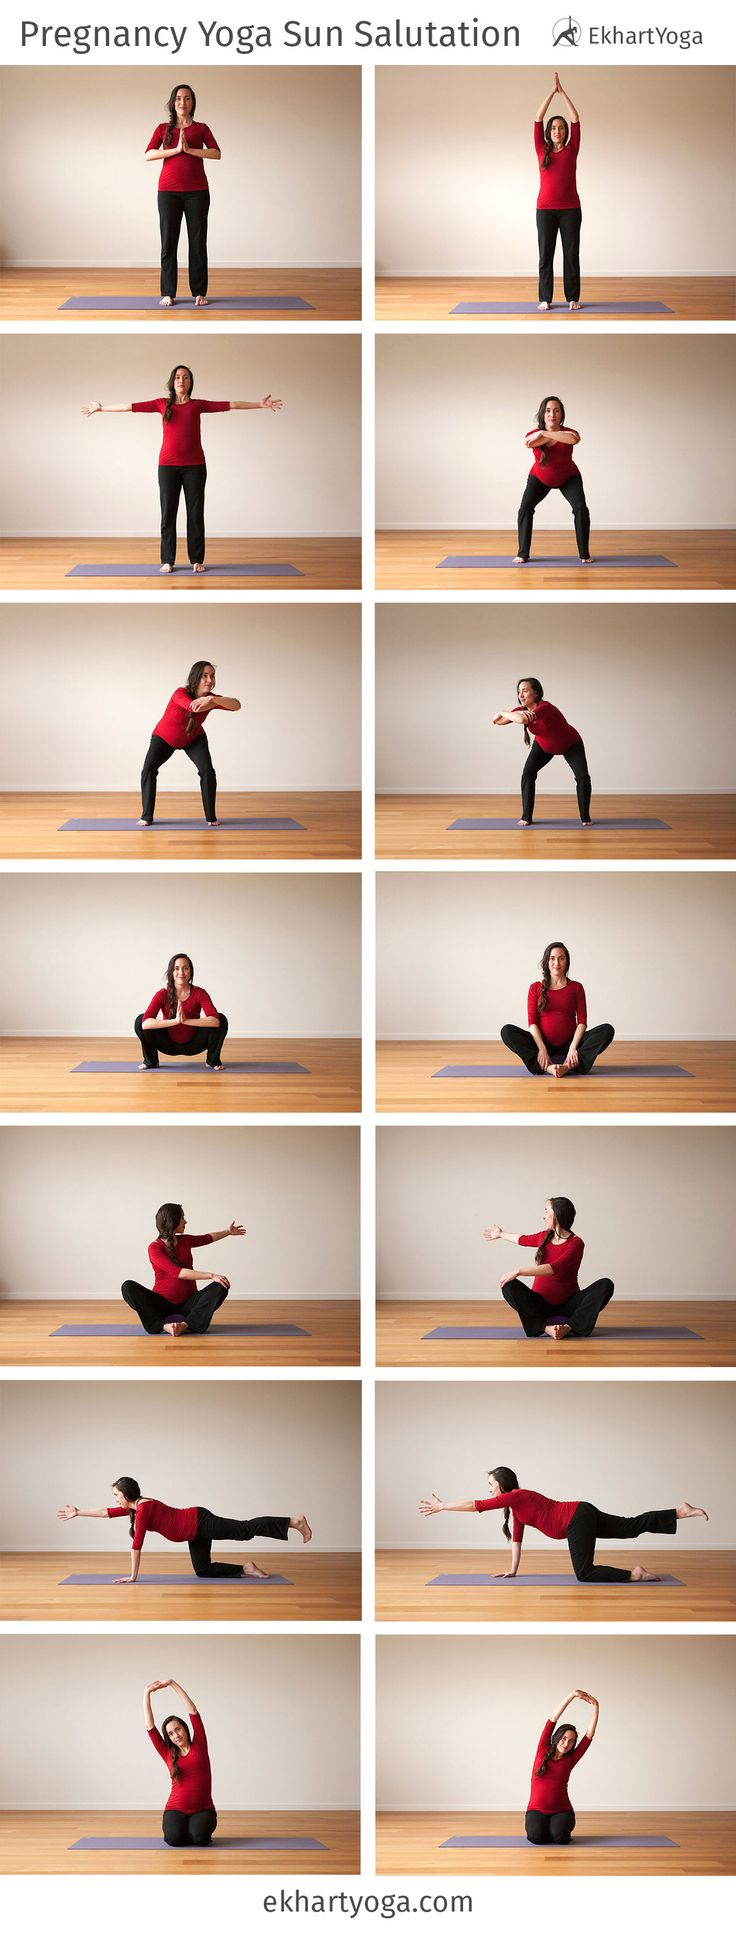 Try this short sequence as a warm-up or as mini-practice if you don't have so much time or energy.